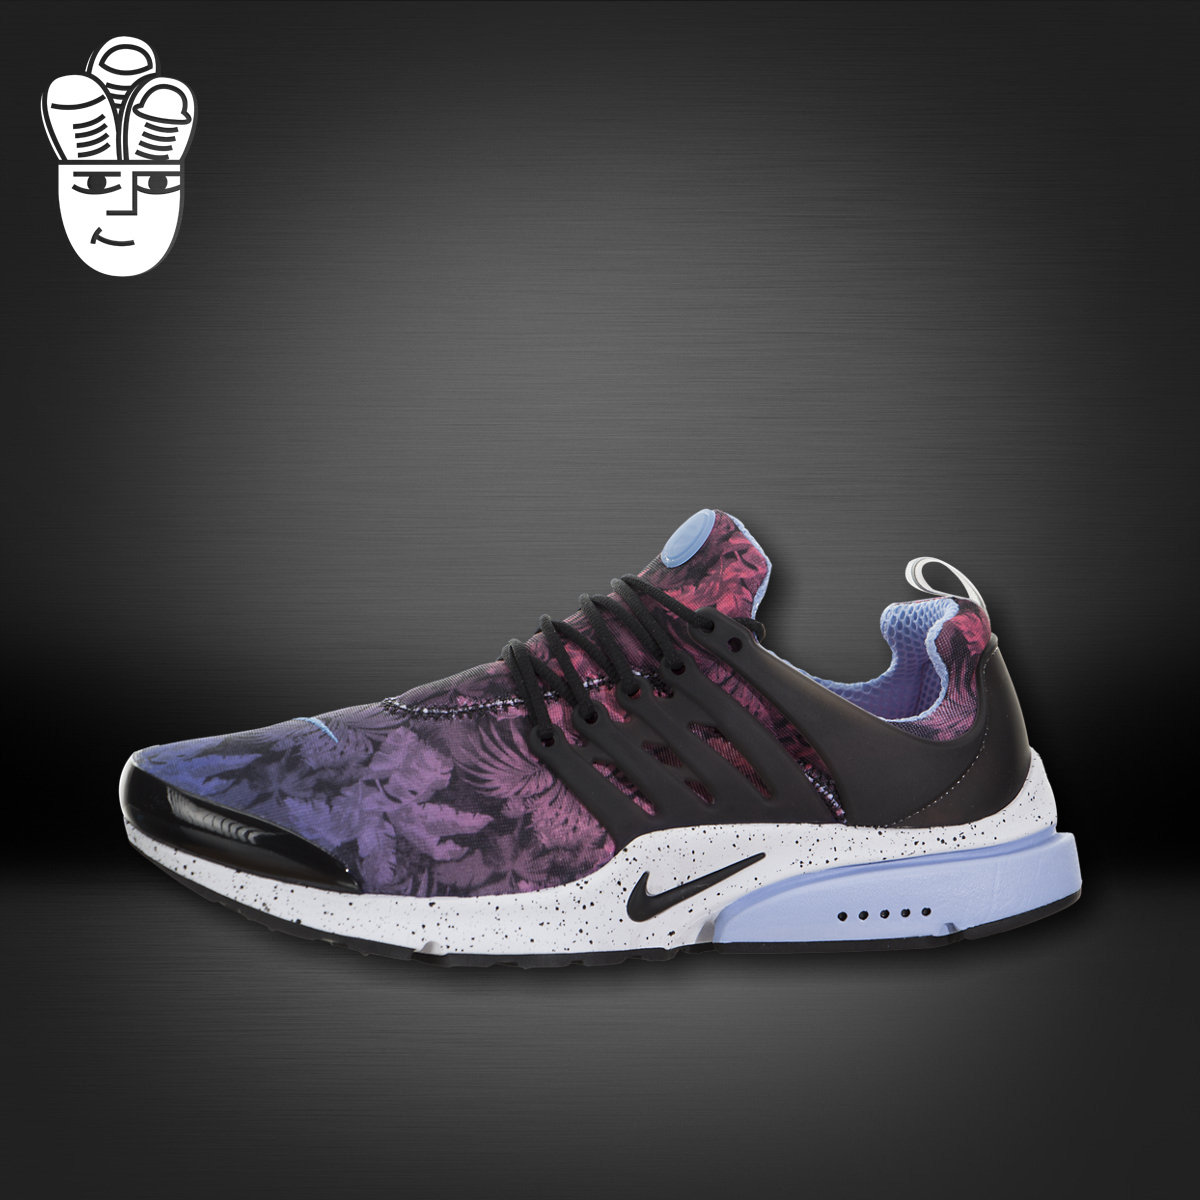 release date a5488 dc718 Get Quotations · Nike air presto nike gpx running shoes men shoes casual  shoes flowers limited 819521